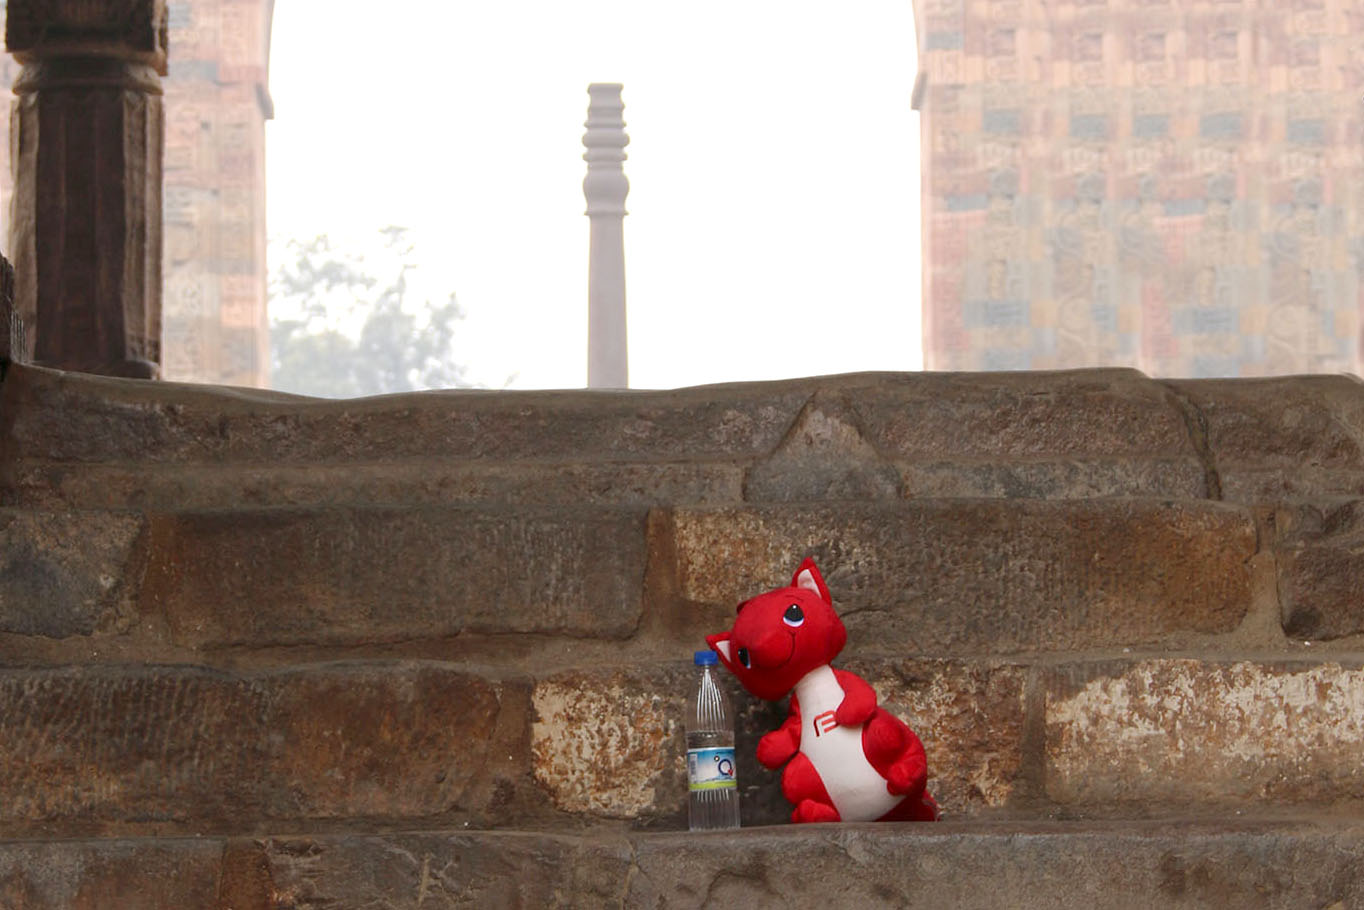 Bricky checks out some Indian stone bricks!